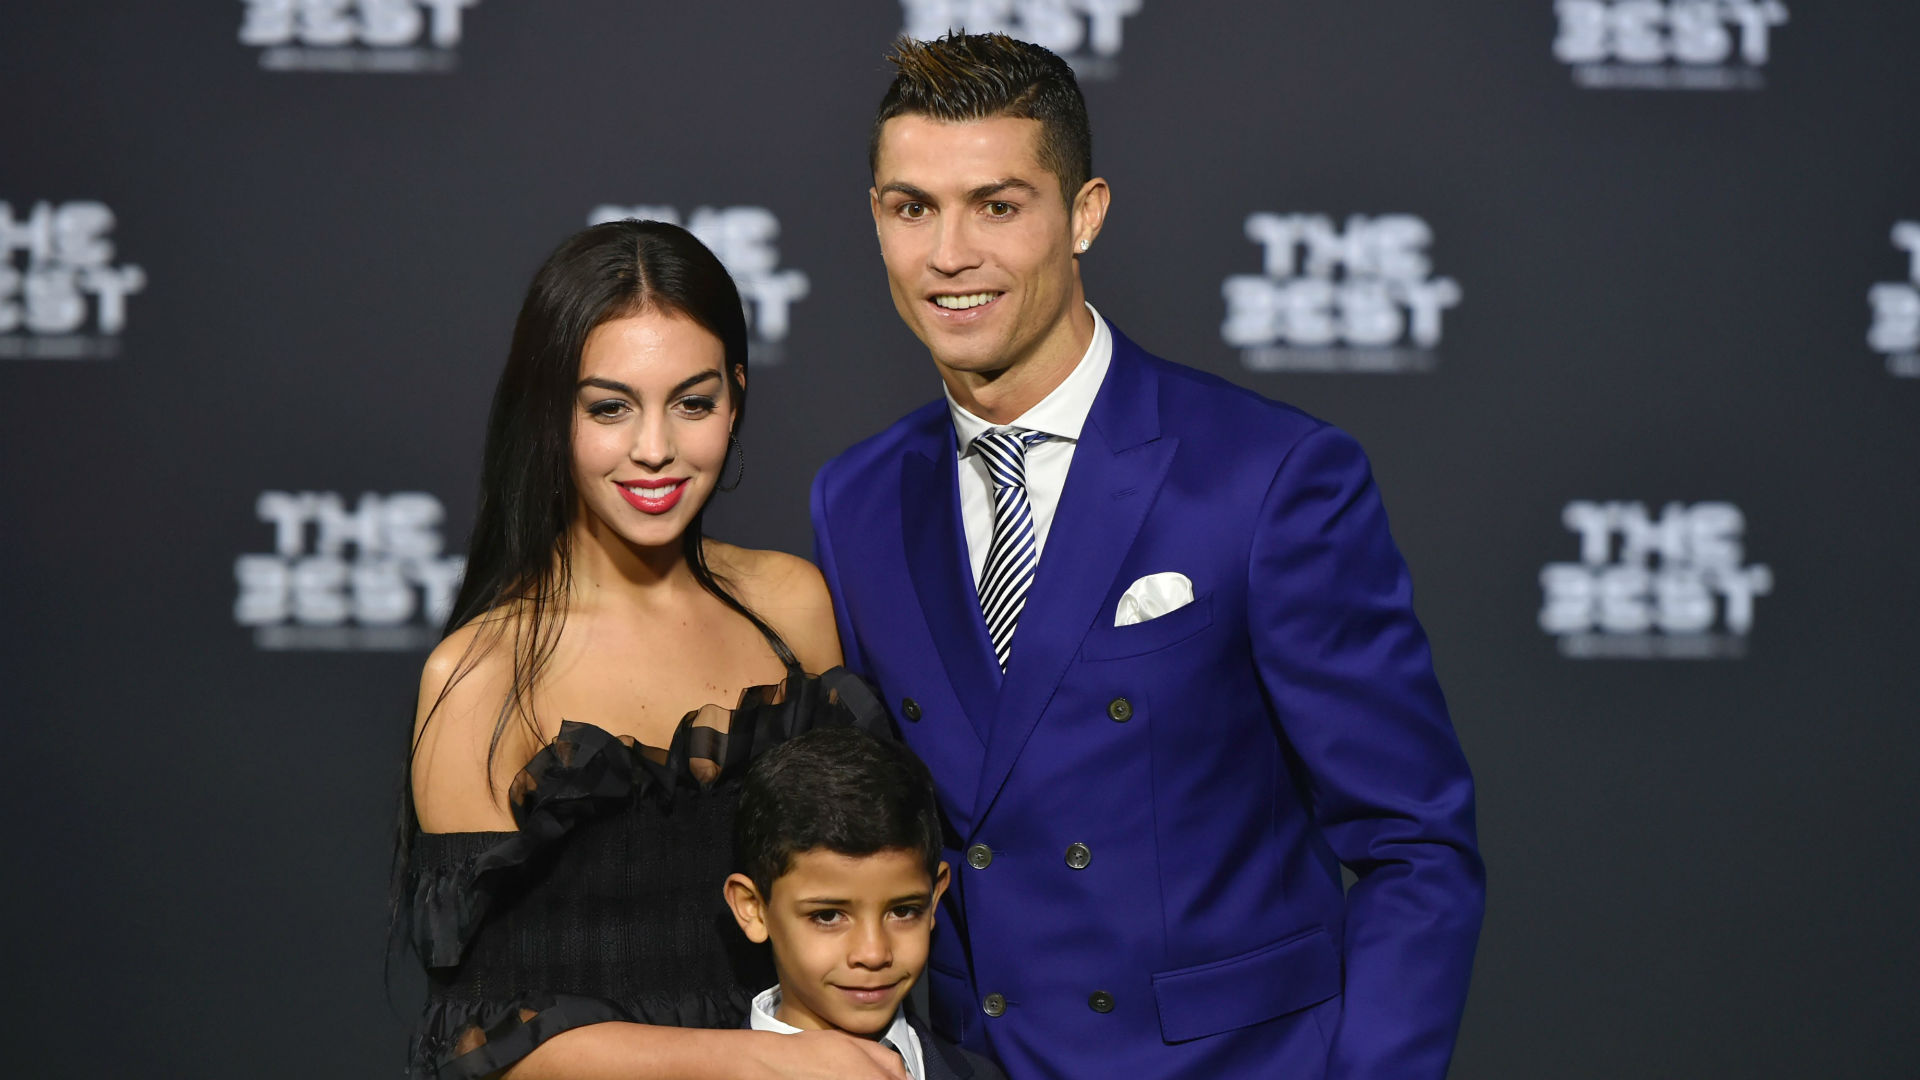 Cristiano Ronaldo wins The Best FIFA men's player for the fourth time